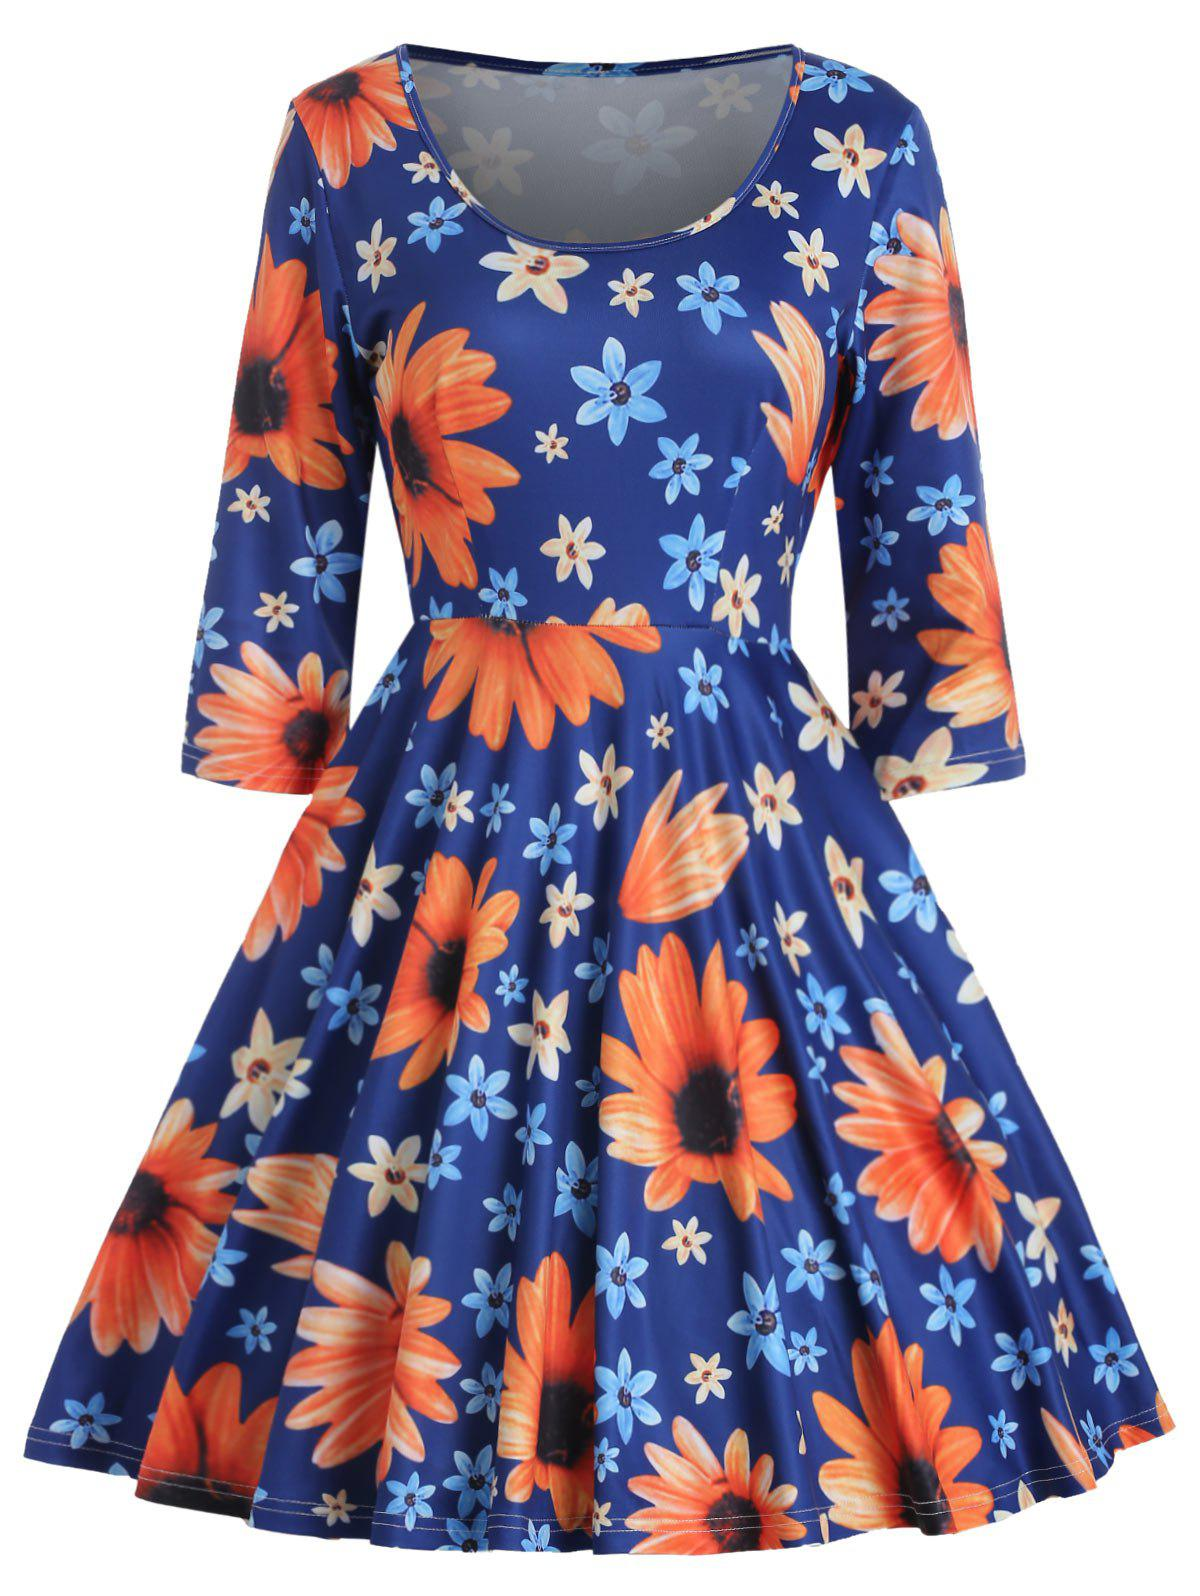 Floral Print High Waist Flared Dress